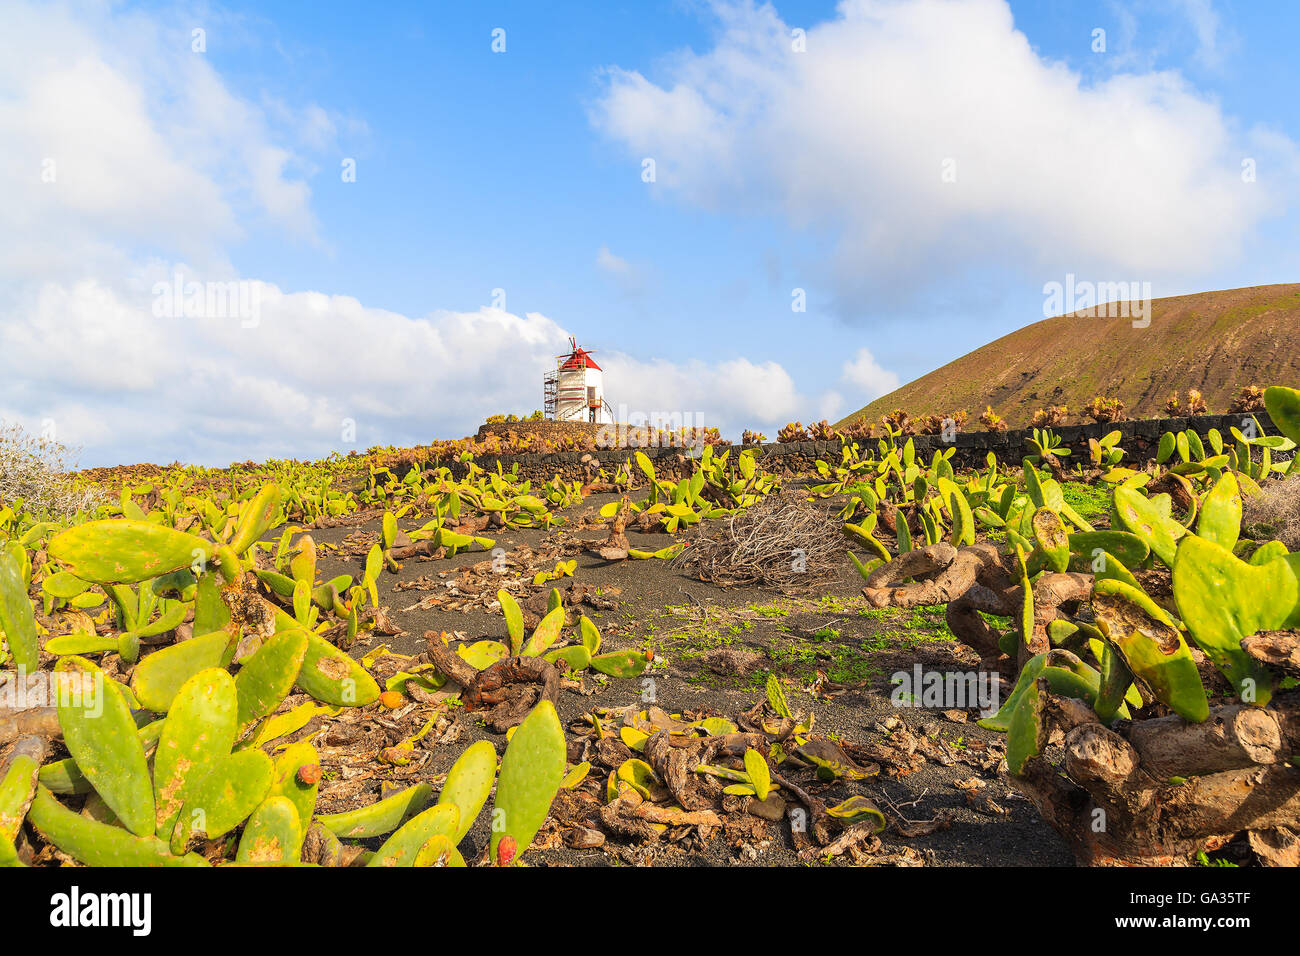 Field with green cactus plants and windmill in background in Guatiza village, Lanzarote, Canary Islands, Spain - Stock Image